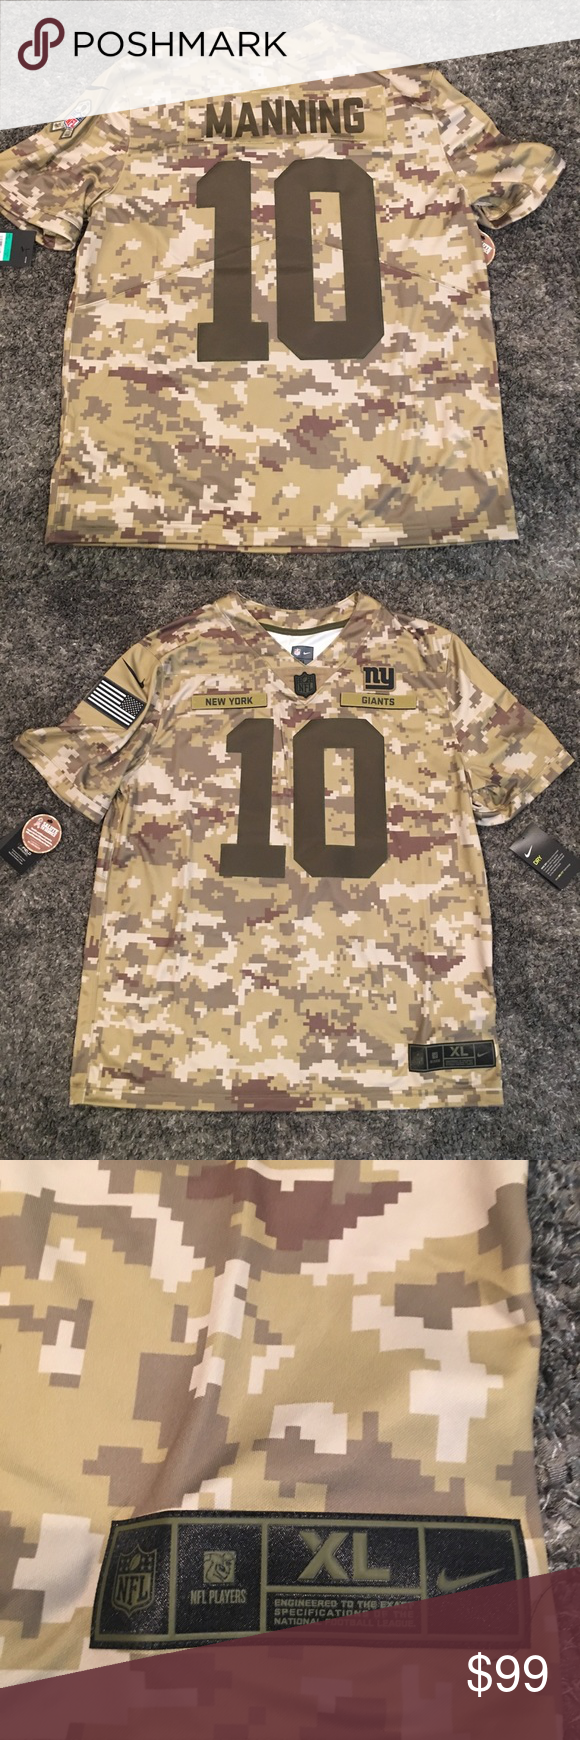 Nike Salute To Service NY Giants 10 Eli Manning XL Brand new Nike Salute To Service NY Giants two time Super Bowl winning Quarterback Eli Manning #10! New with tags. Digital Camo men's size XL. Thank you for looking Nike Shirts Tees - Short Sleeve #salutetoservice